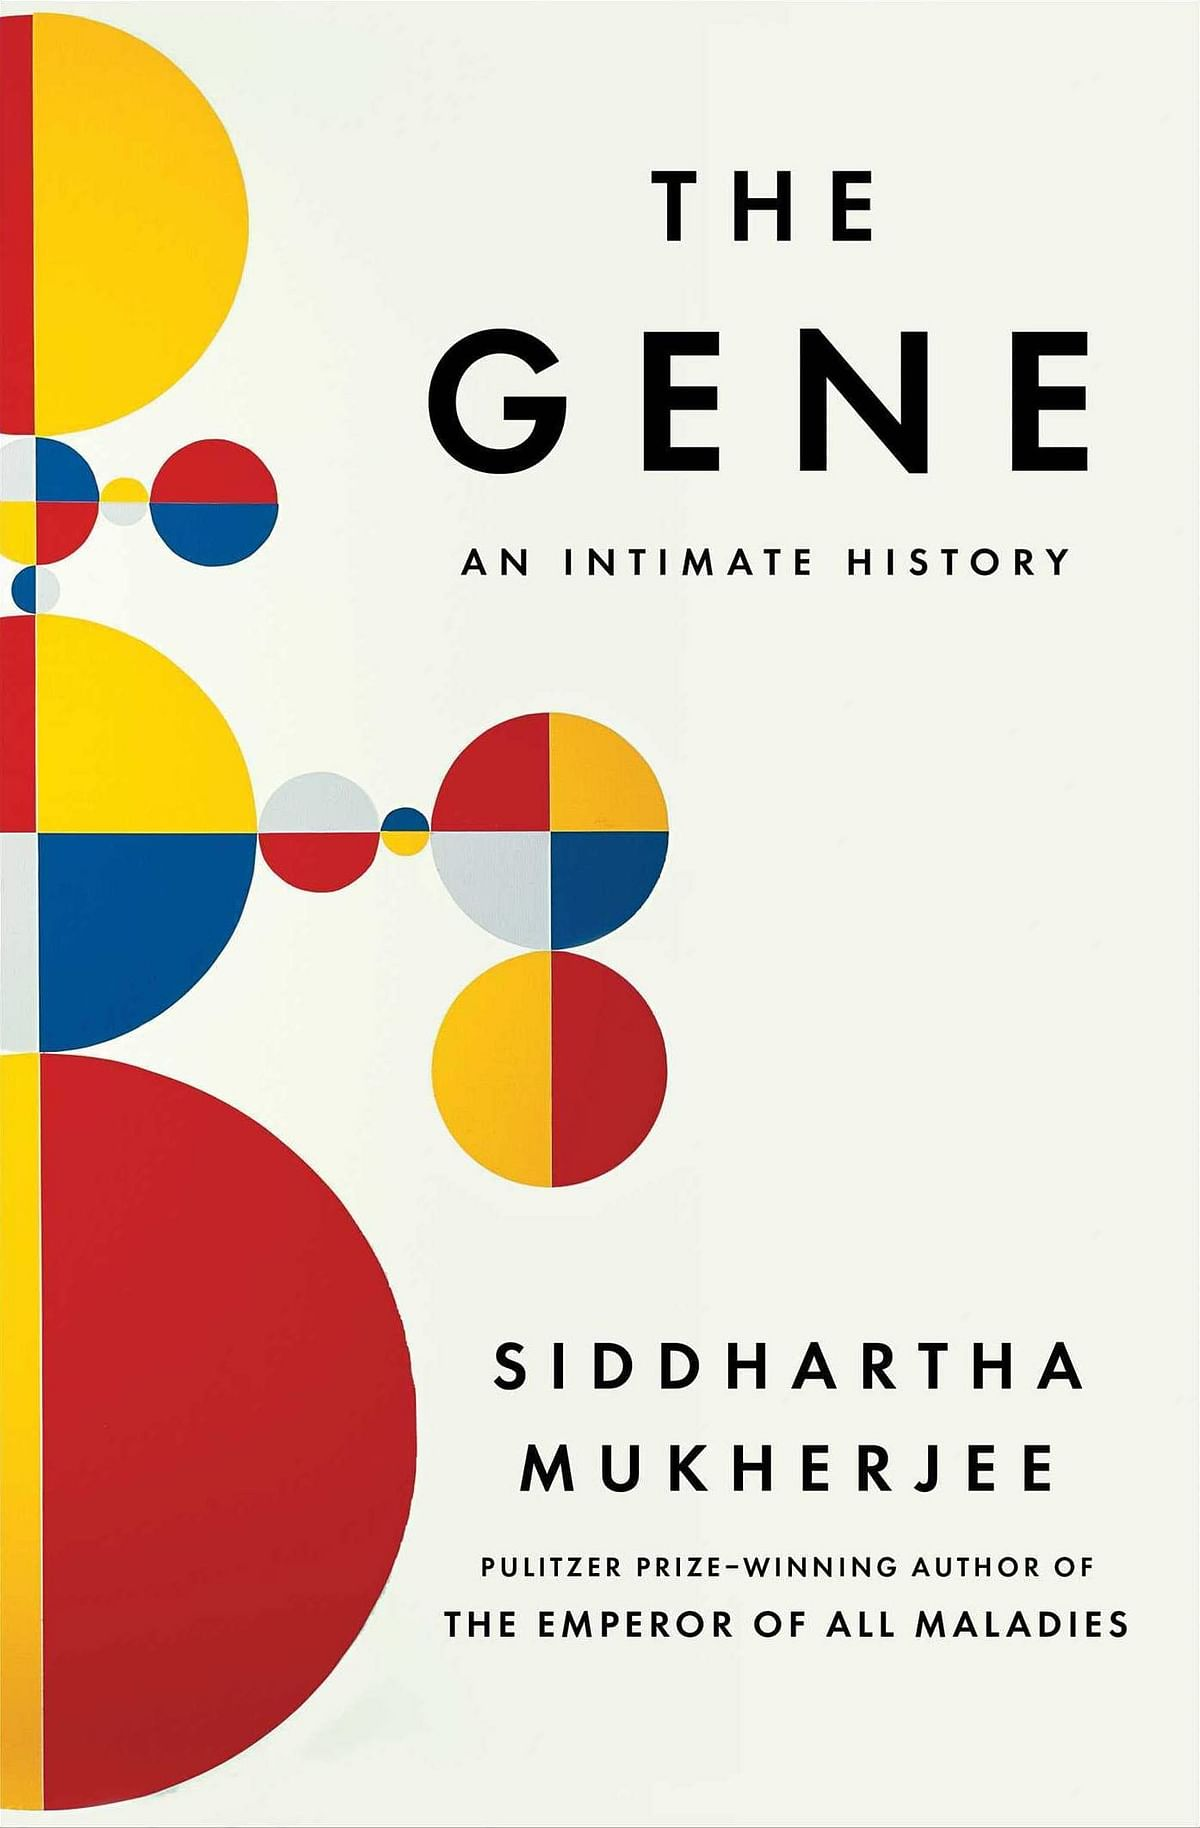 For further reading: check out one of the most acclaimed books on genetics.